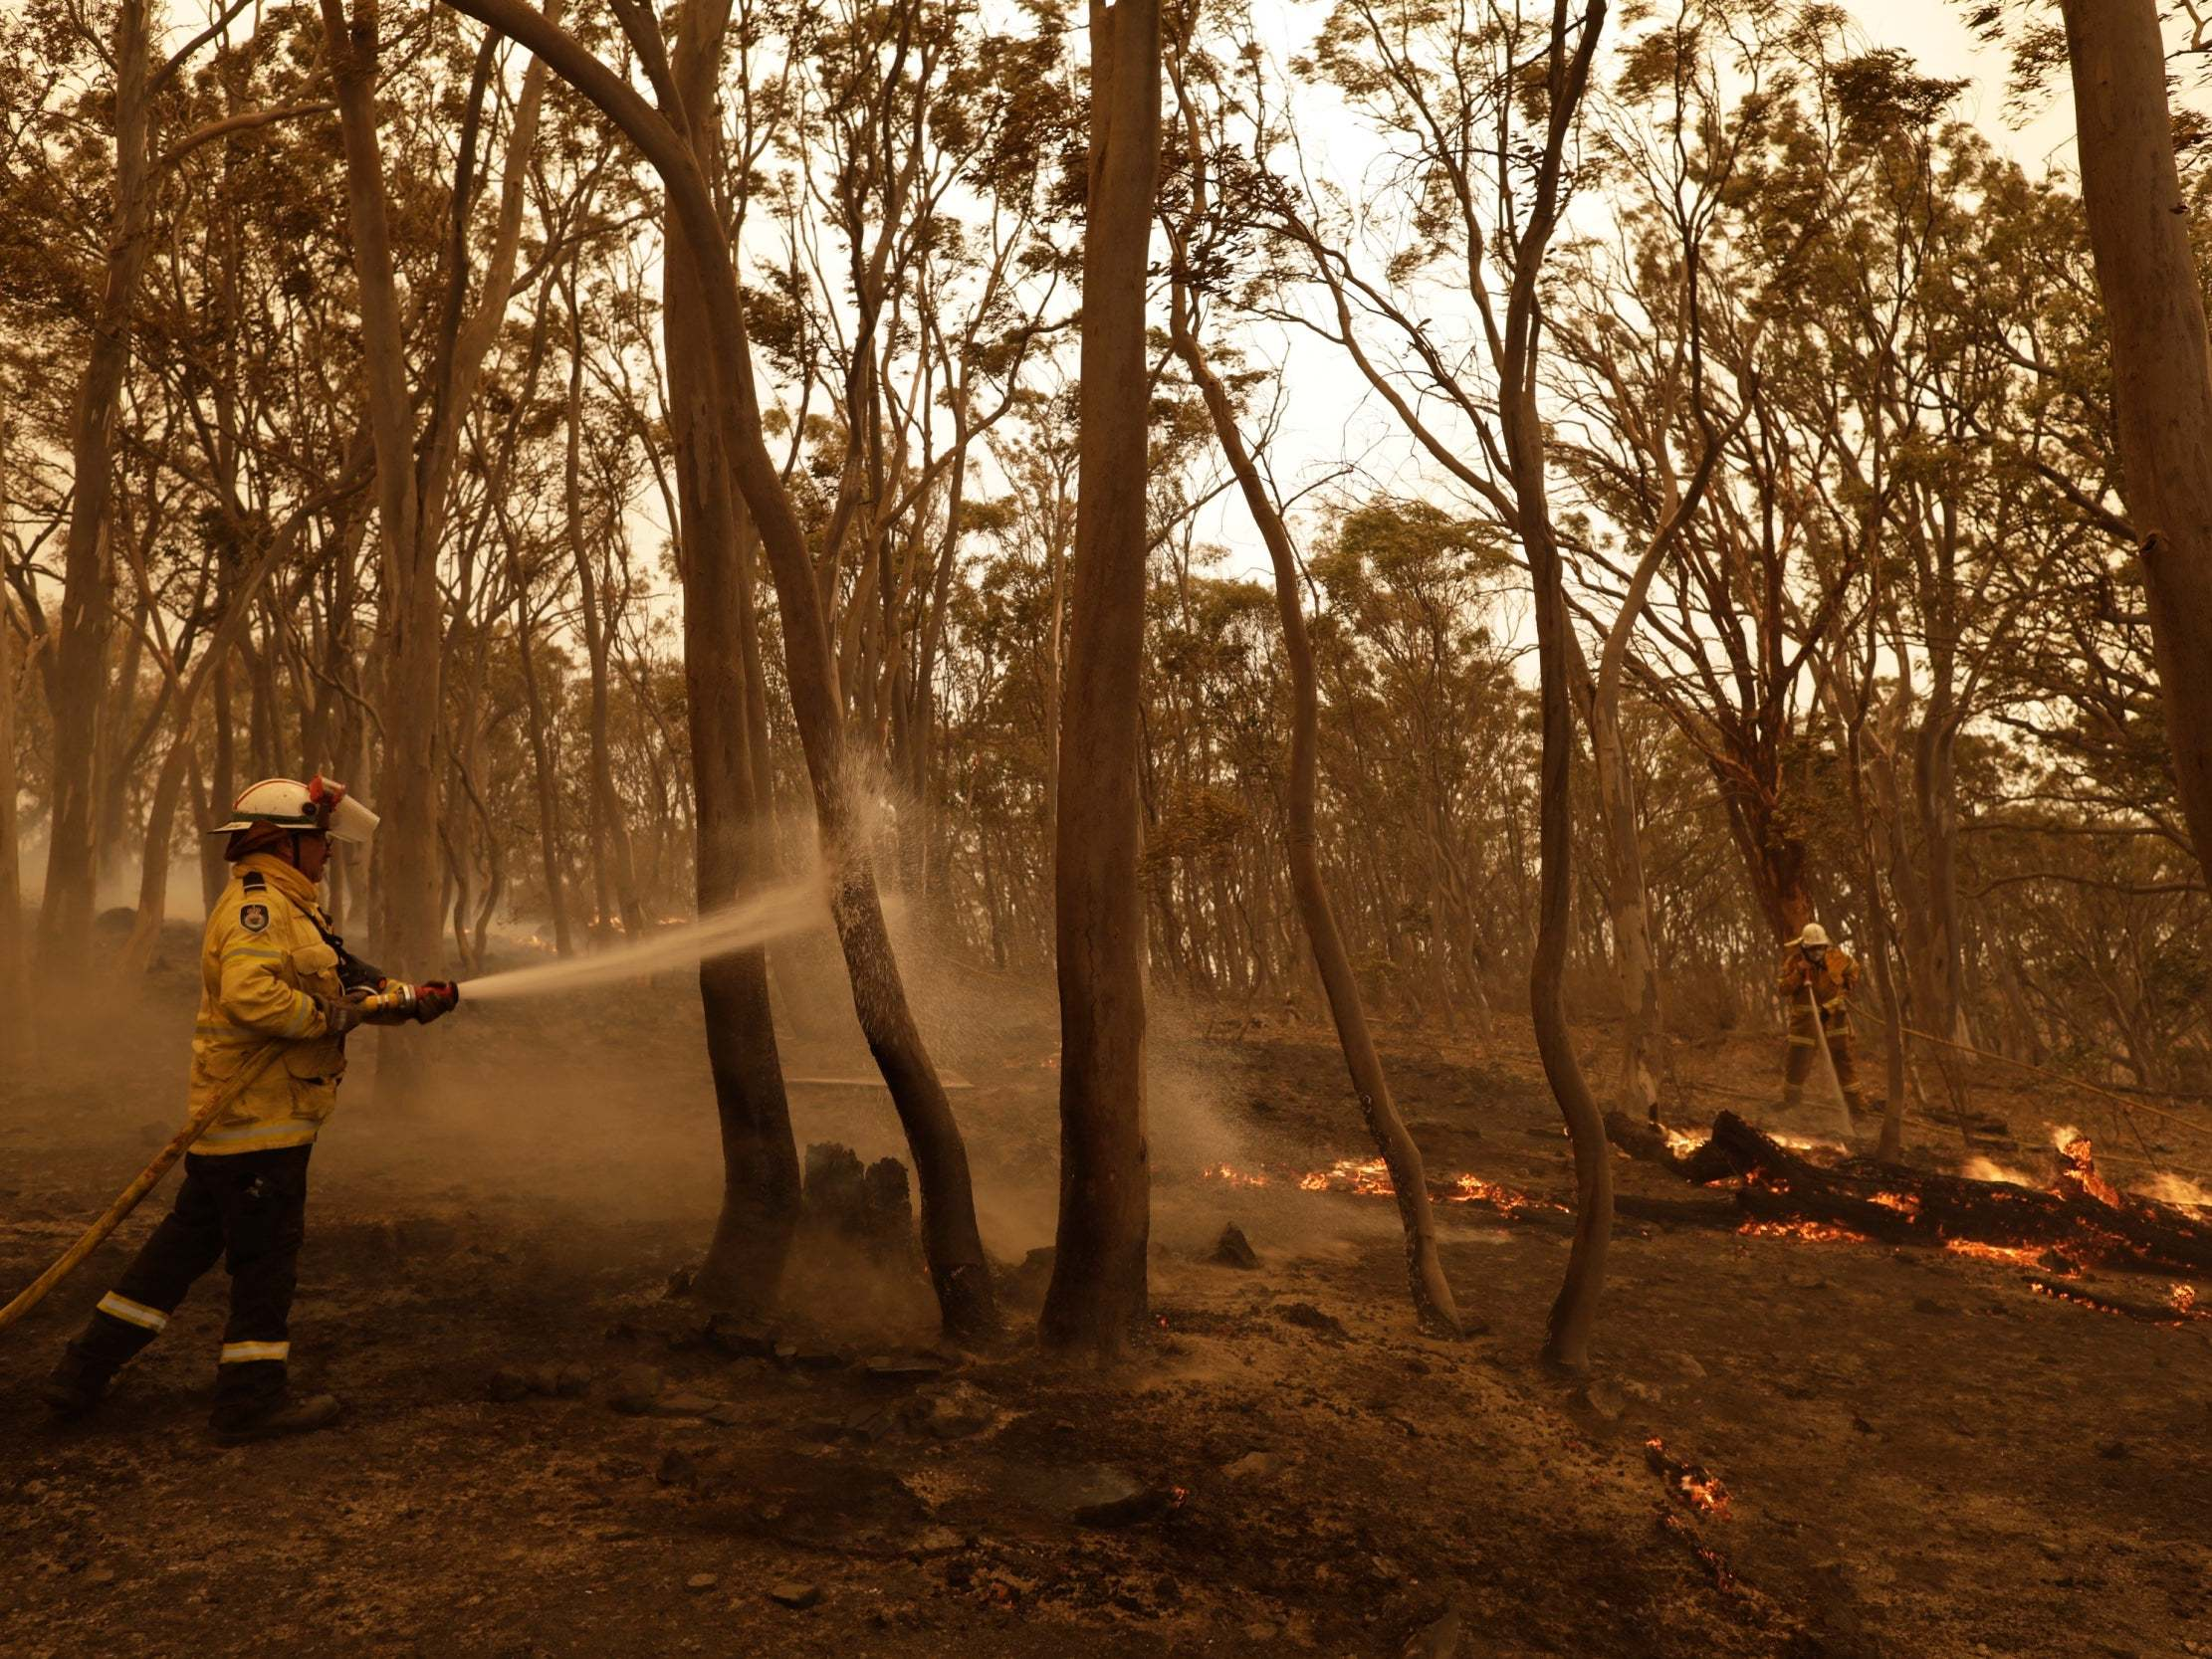 Bushfires in fire-stricken Australian state contained for first time in months